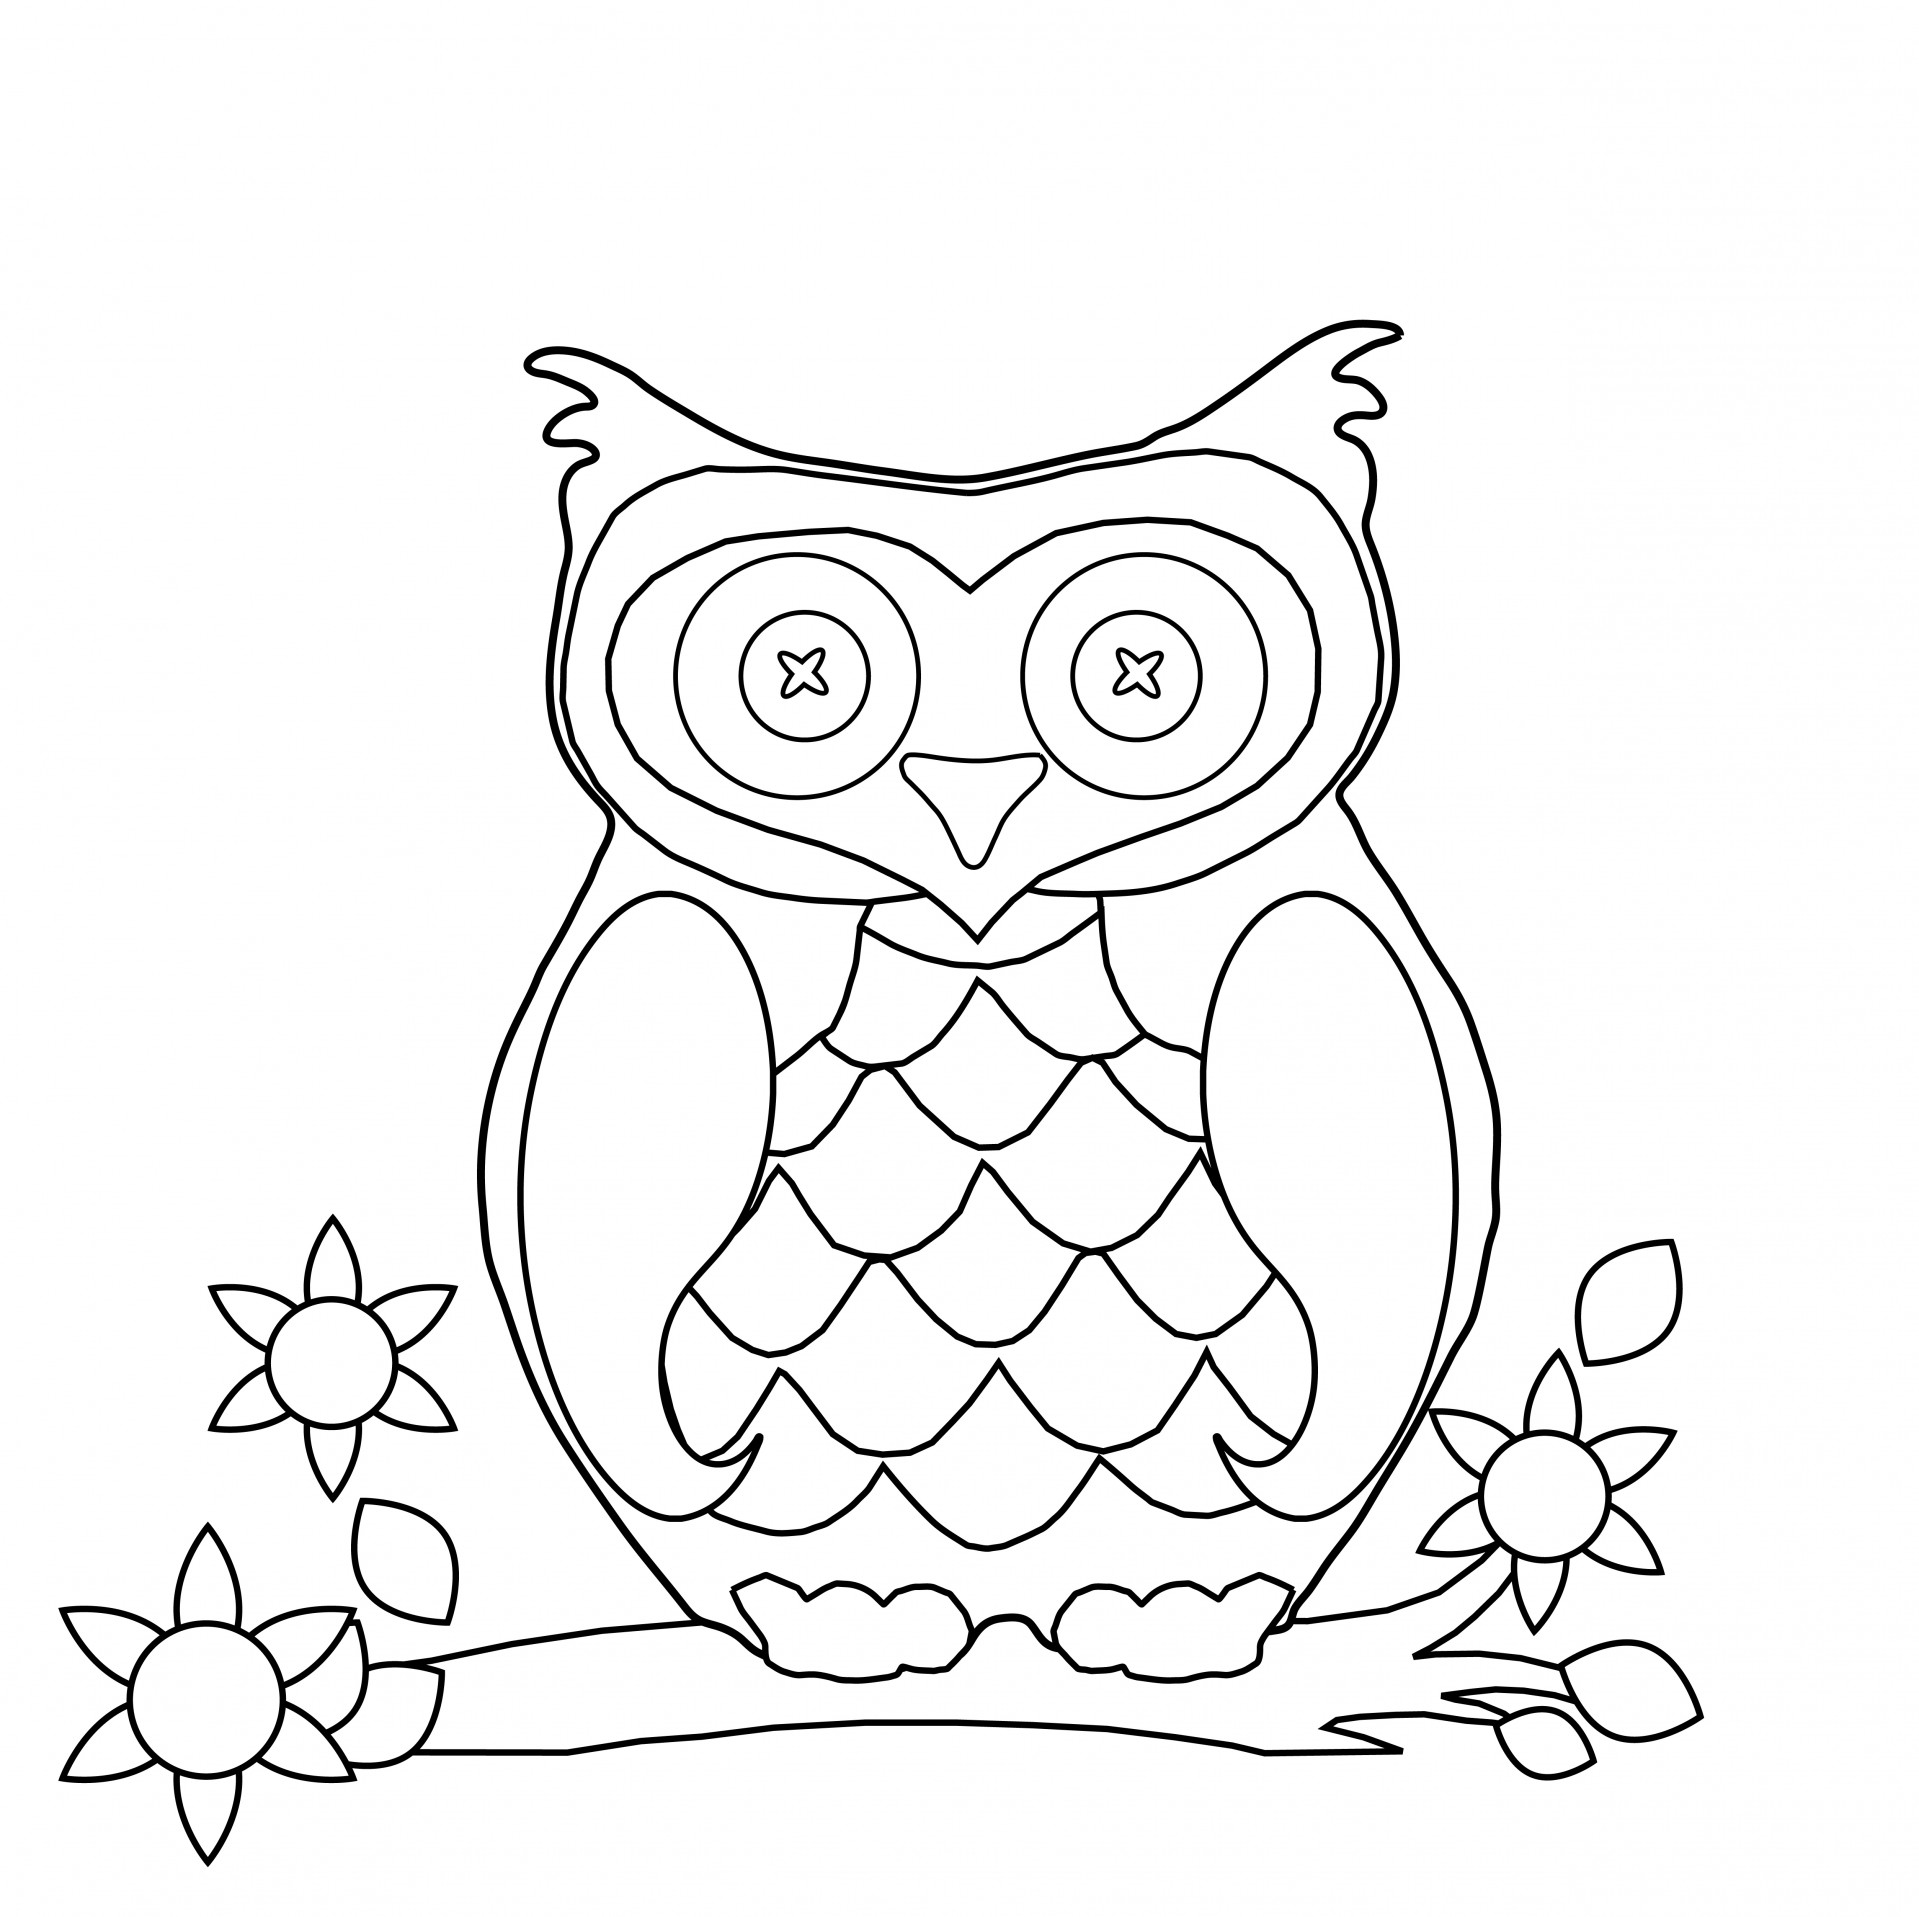 design art coloring pages coloring pages difficult but fun coloring pages free and design coloring pages art